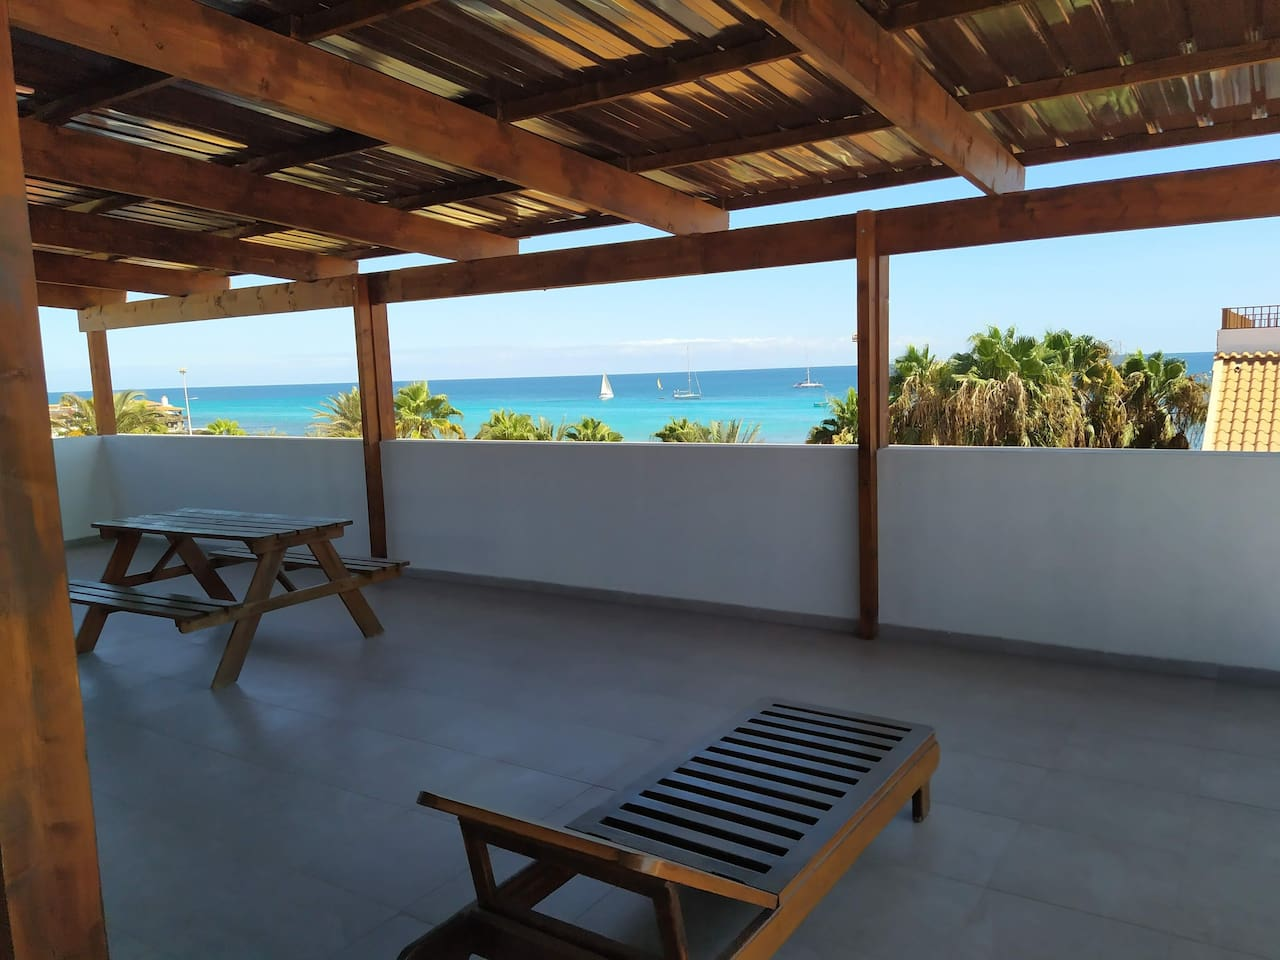 Enjoy your spectacular roof top view any time of day. The  ocean never leaves. Have a drink, read a book, dance like a crazy person or just be. There apartments and Surf house are brilliant.